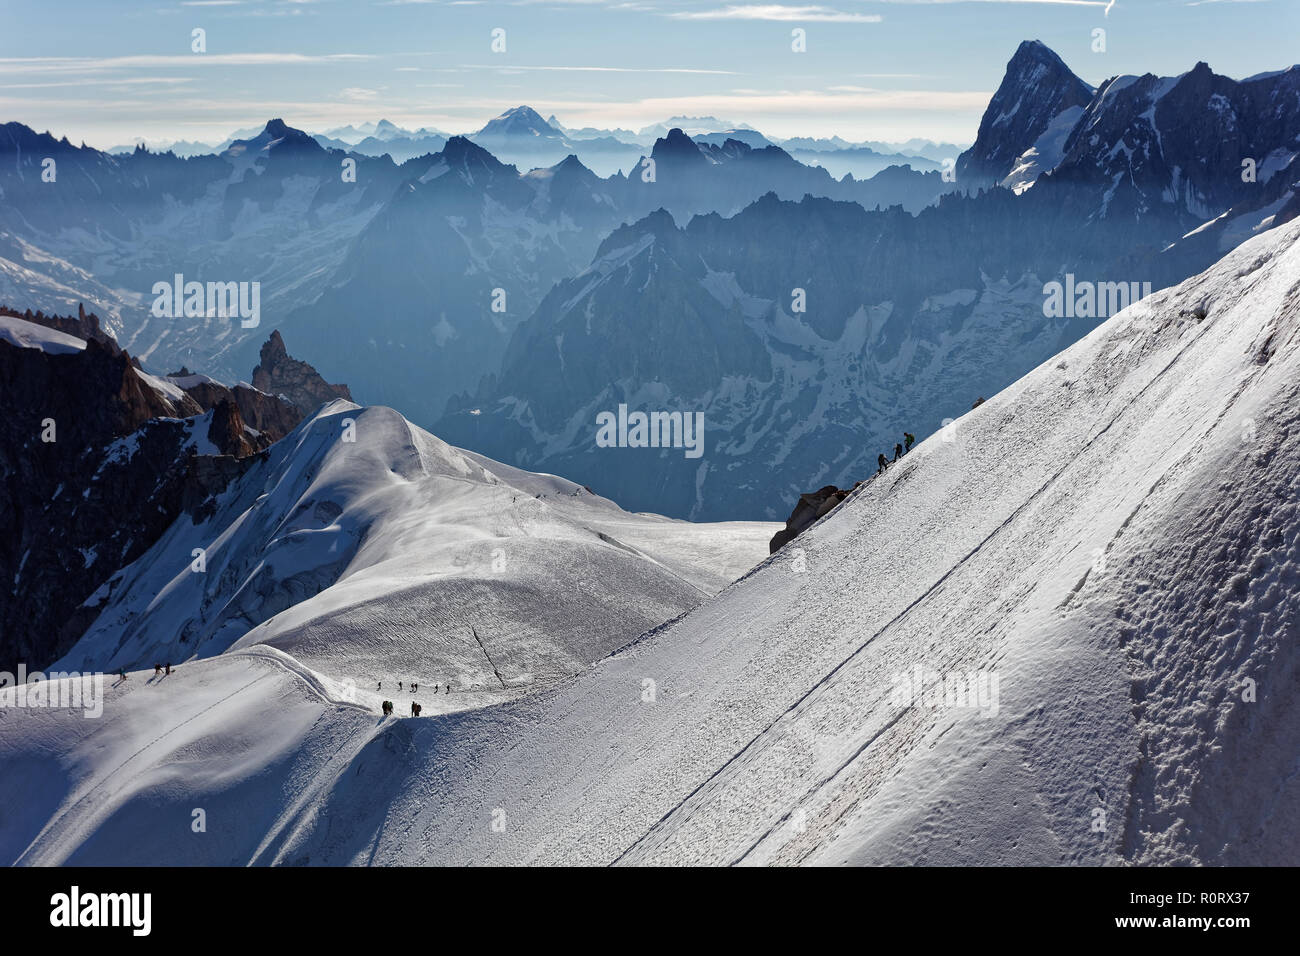 Chamonix, south-east France, Auvergne-Rhône-Alpes. Climbers heading for Mont Blanc. Descending from Aiguille du Midi cable car station towards sunny s - Stock Image